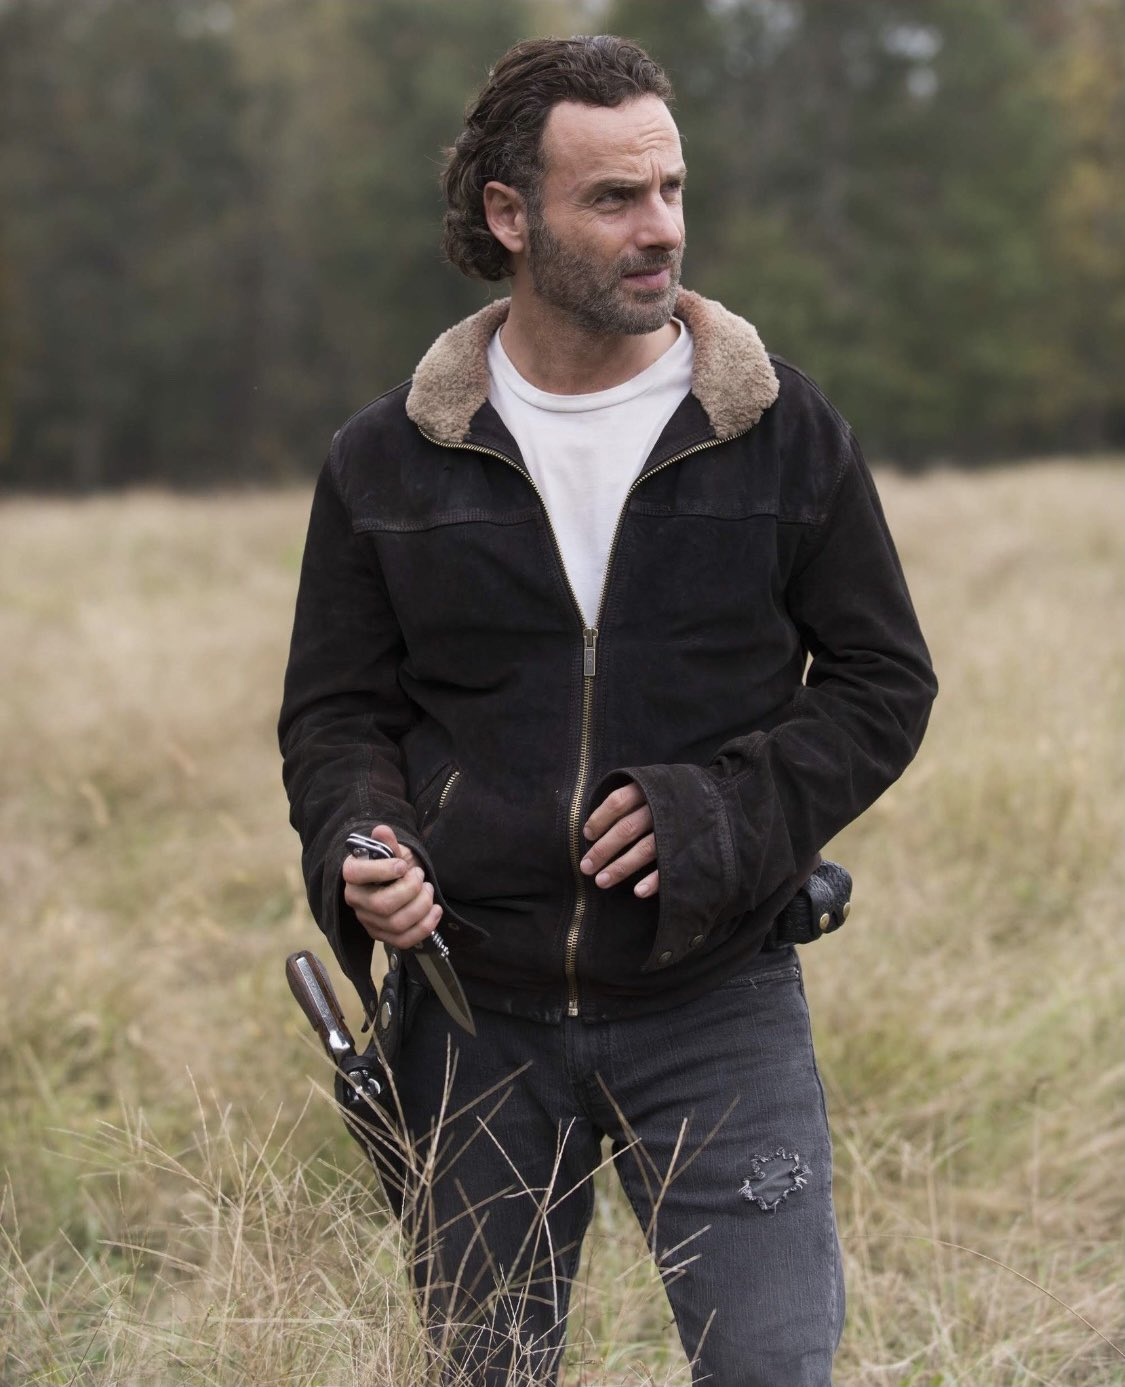 Happy birthday, Andrew Lincoln! Can t wait to see you back in TWD universe as Rick Grimes. Have a nice one.